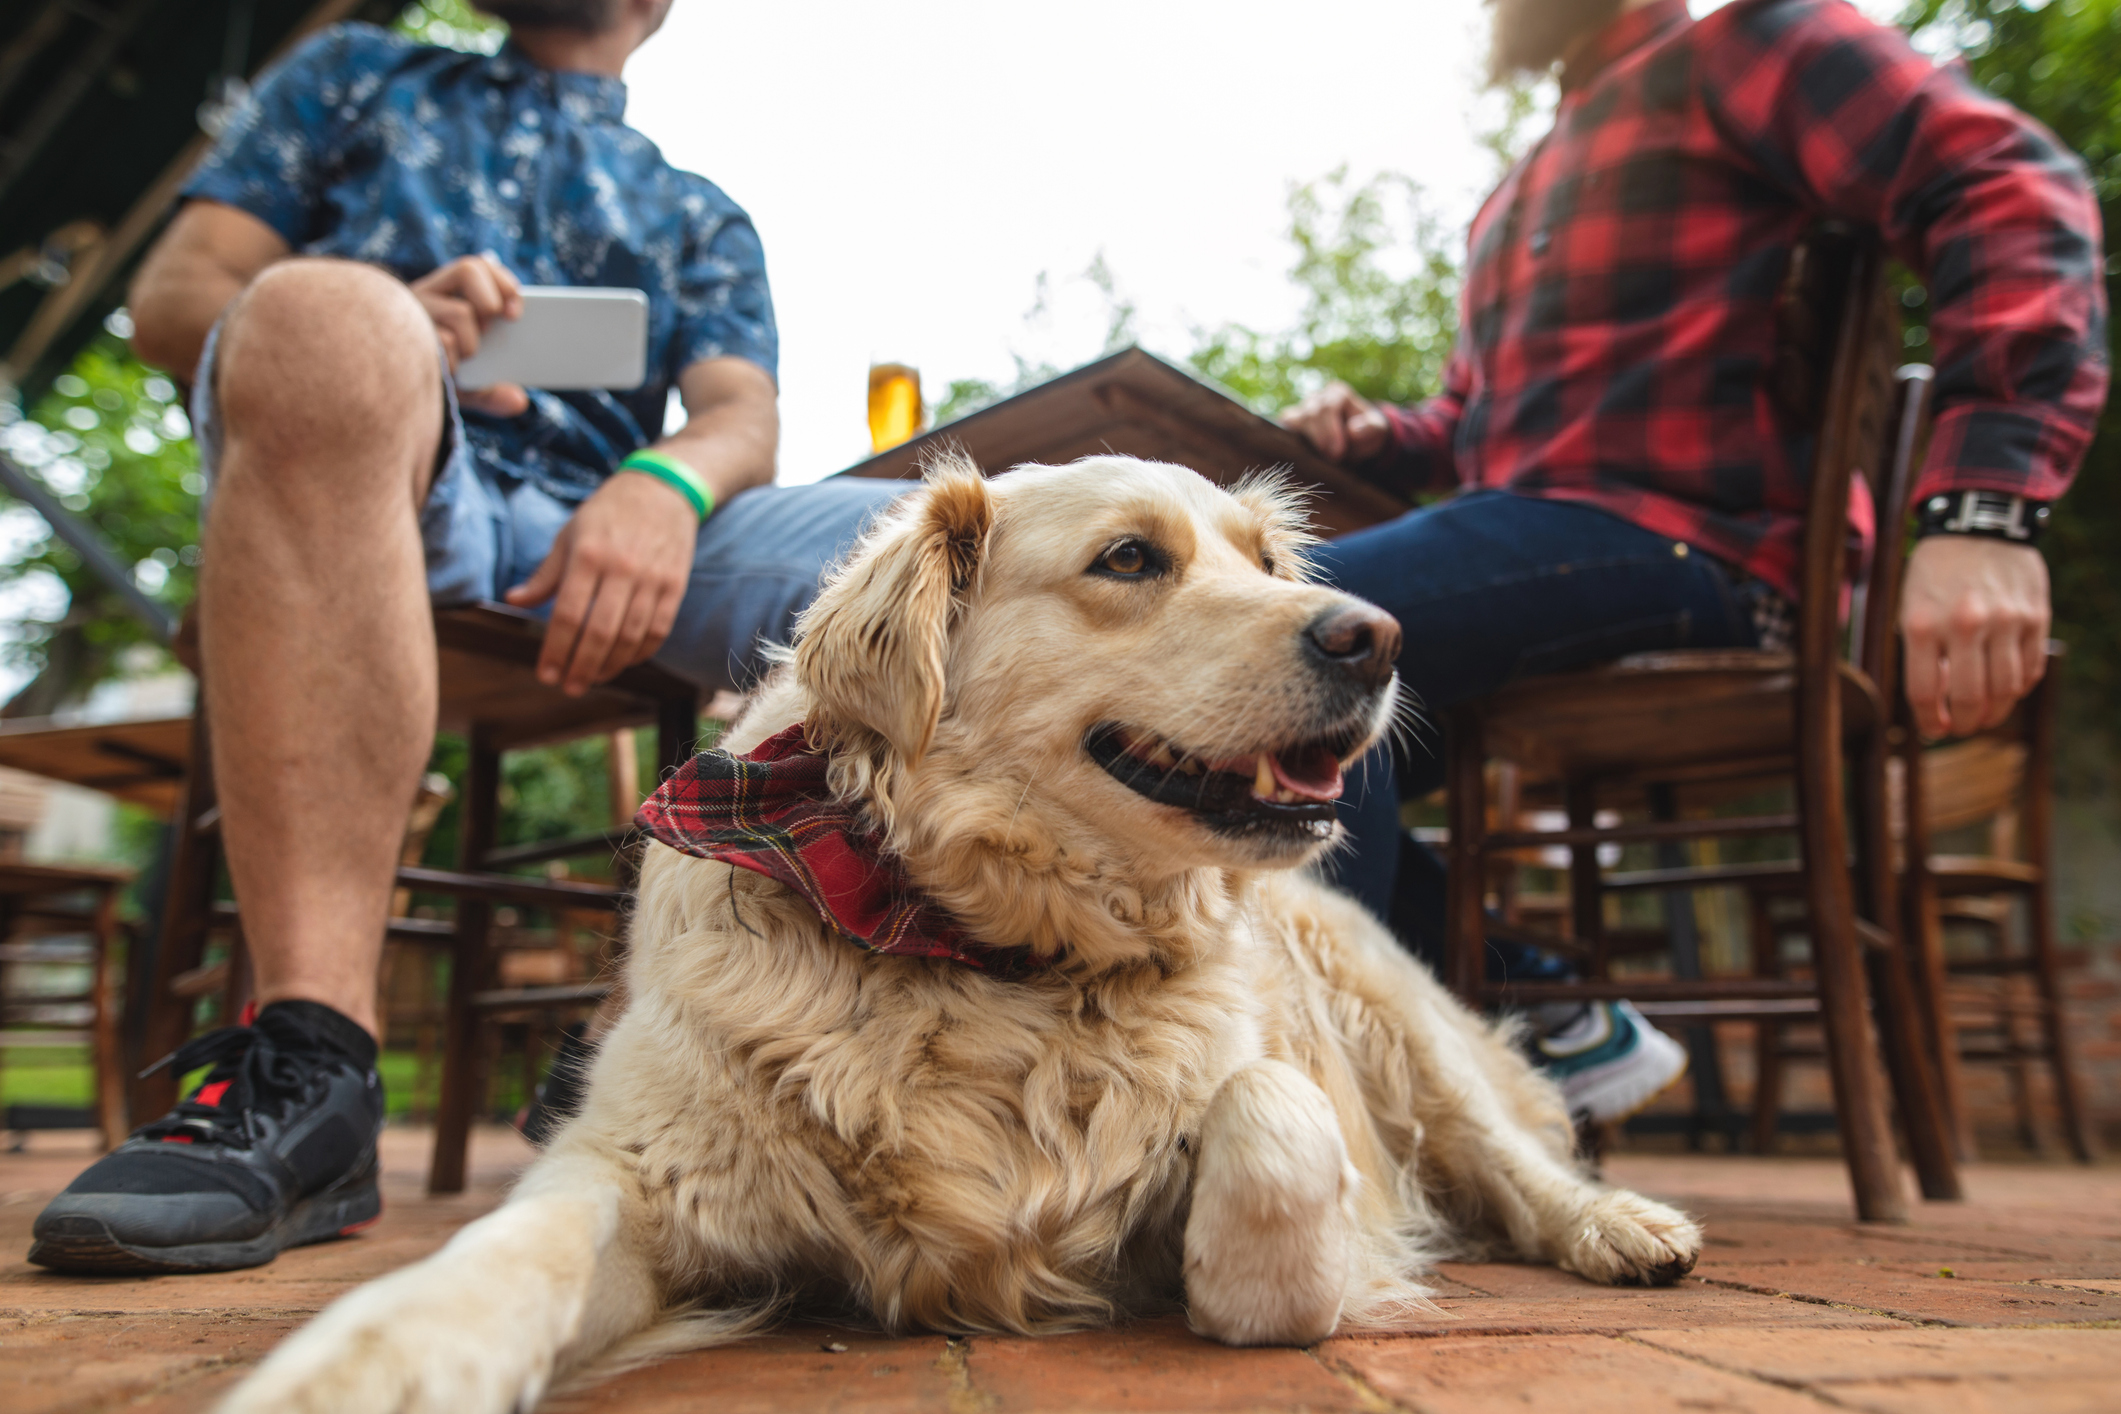 A dog laying down at an outdoor bar as his owners drink beers.